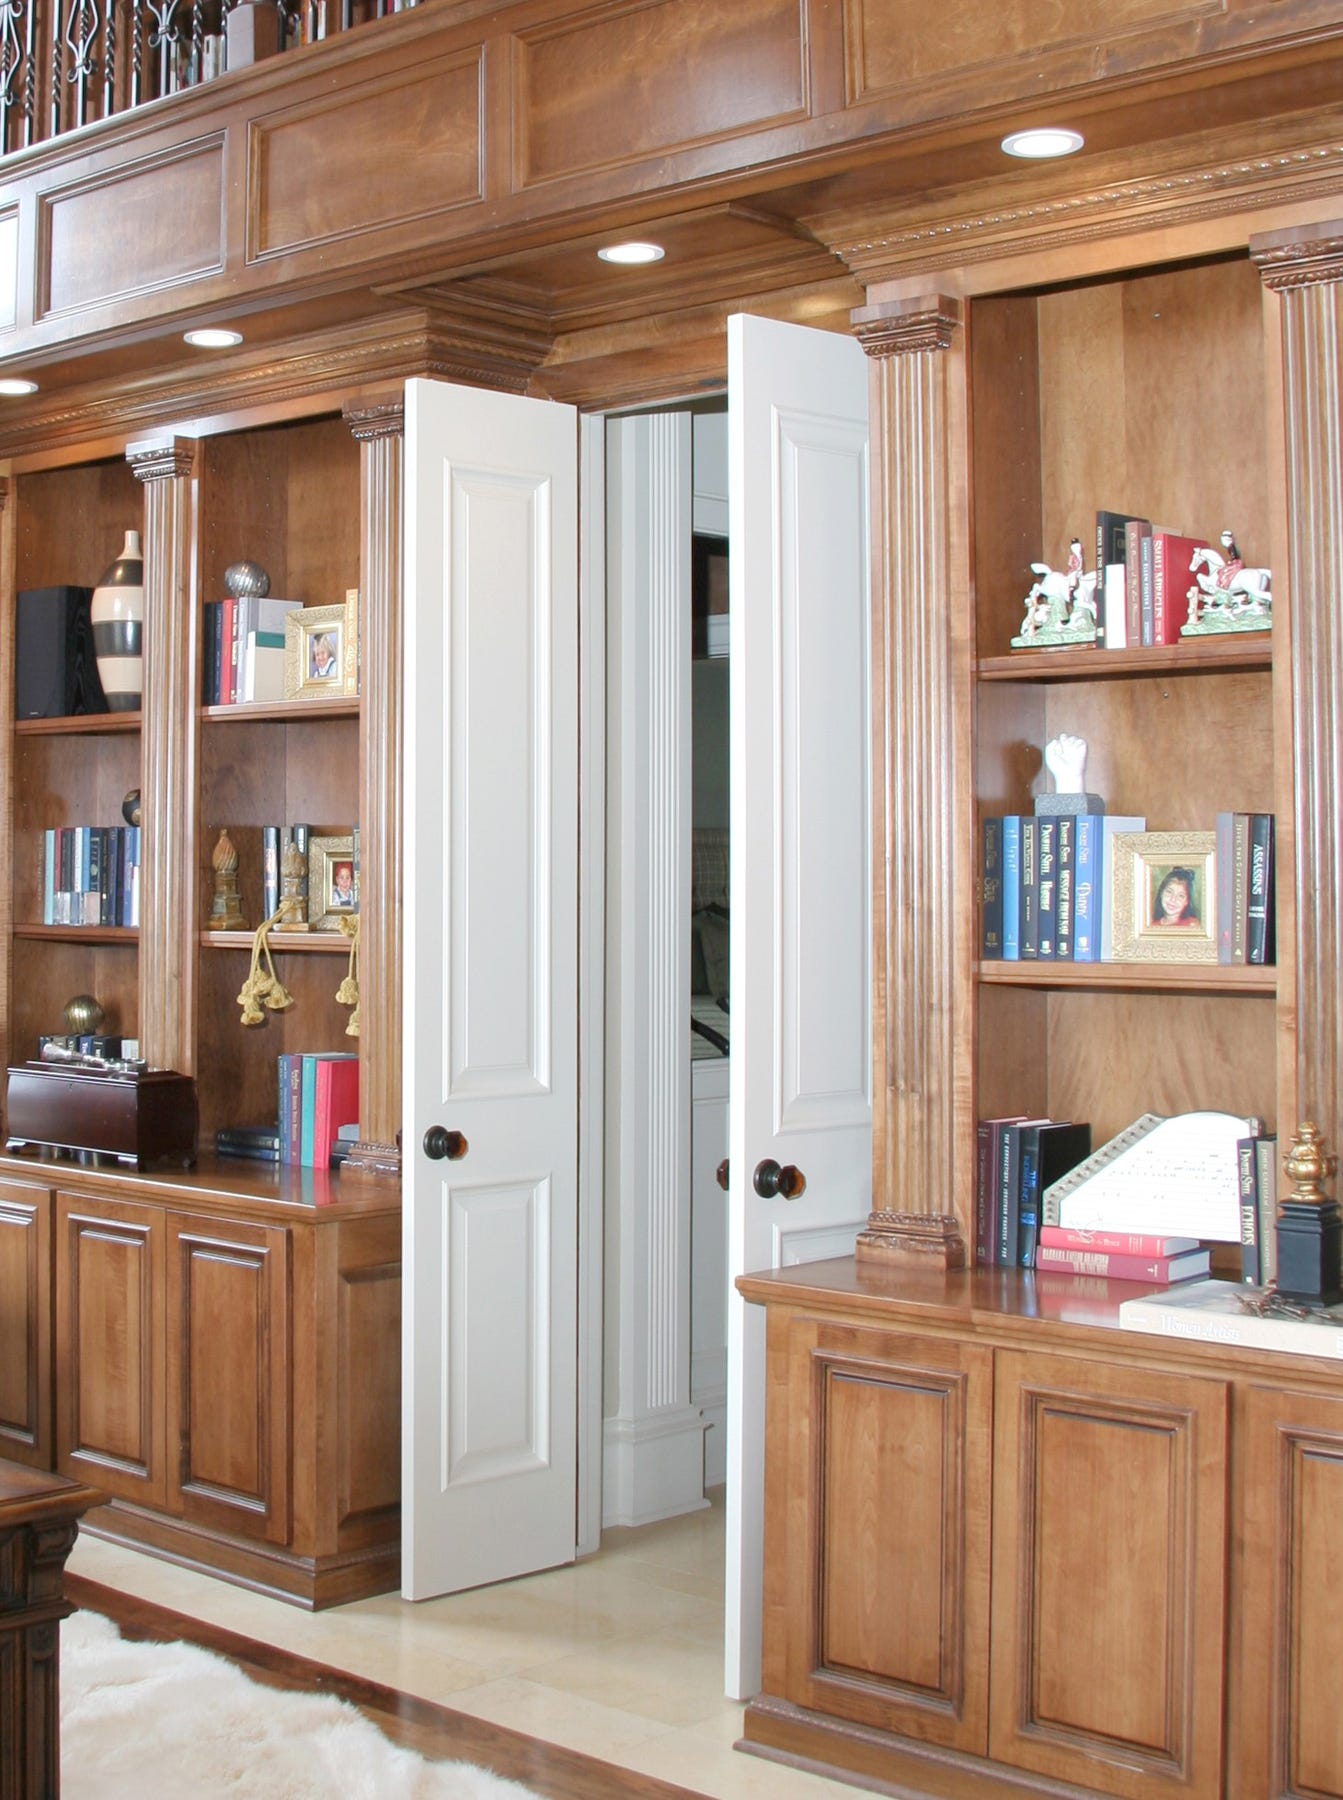 Small Spaces Save space with doors